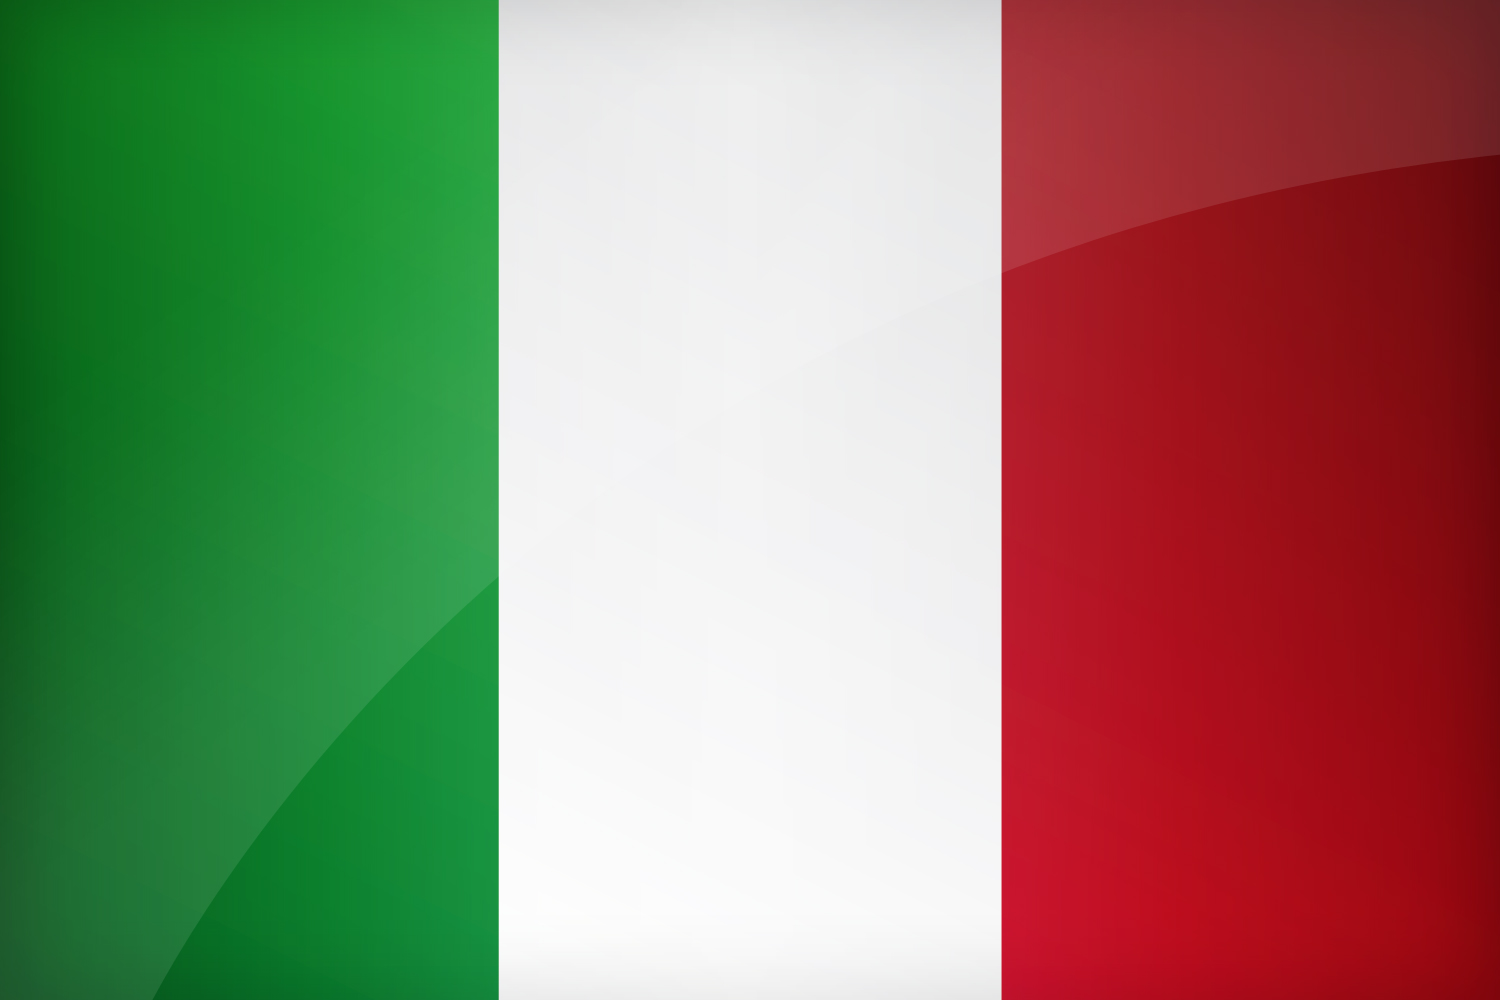 Flag of Italy Wikipedia